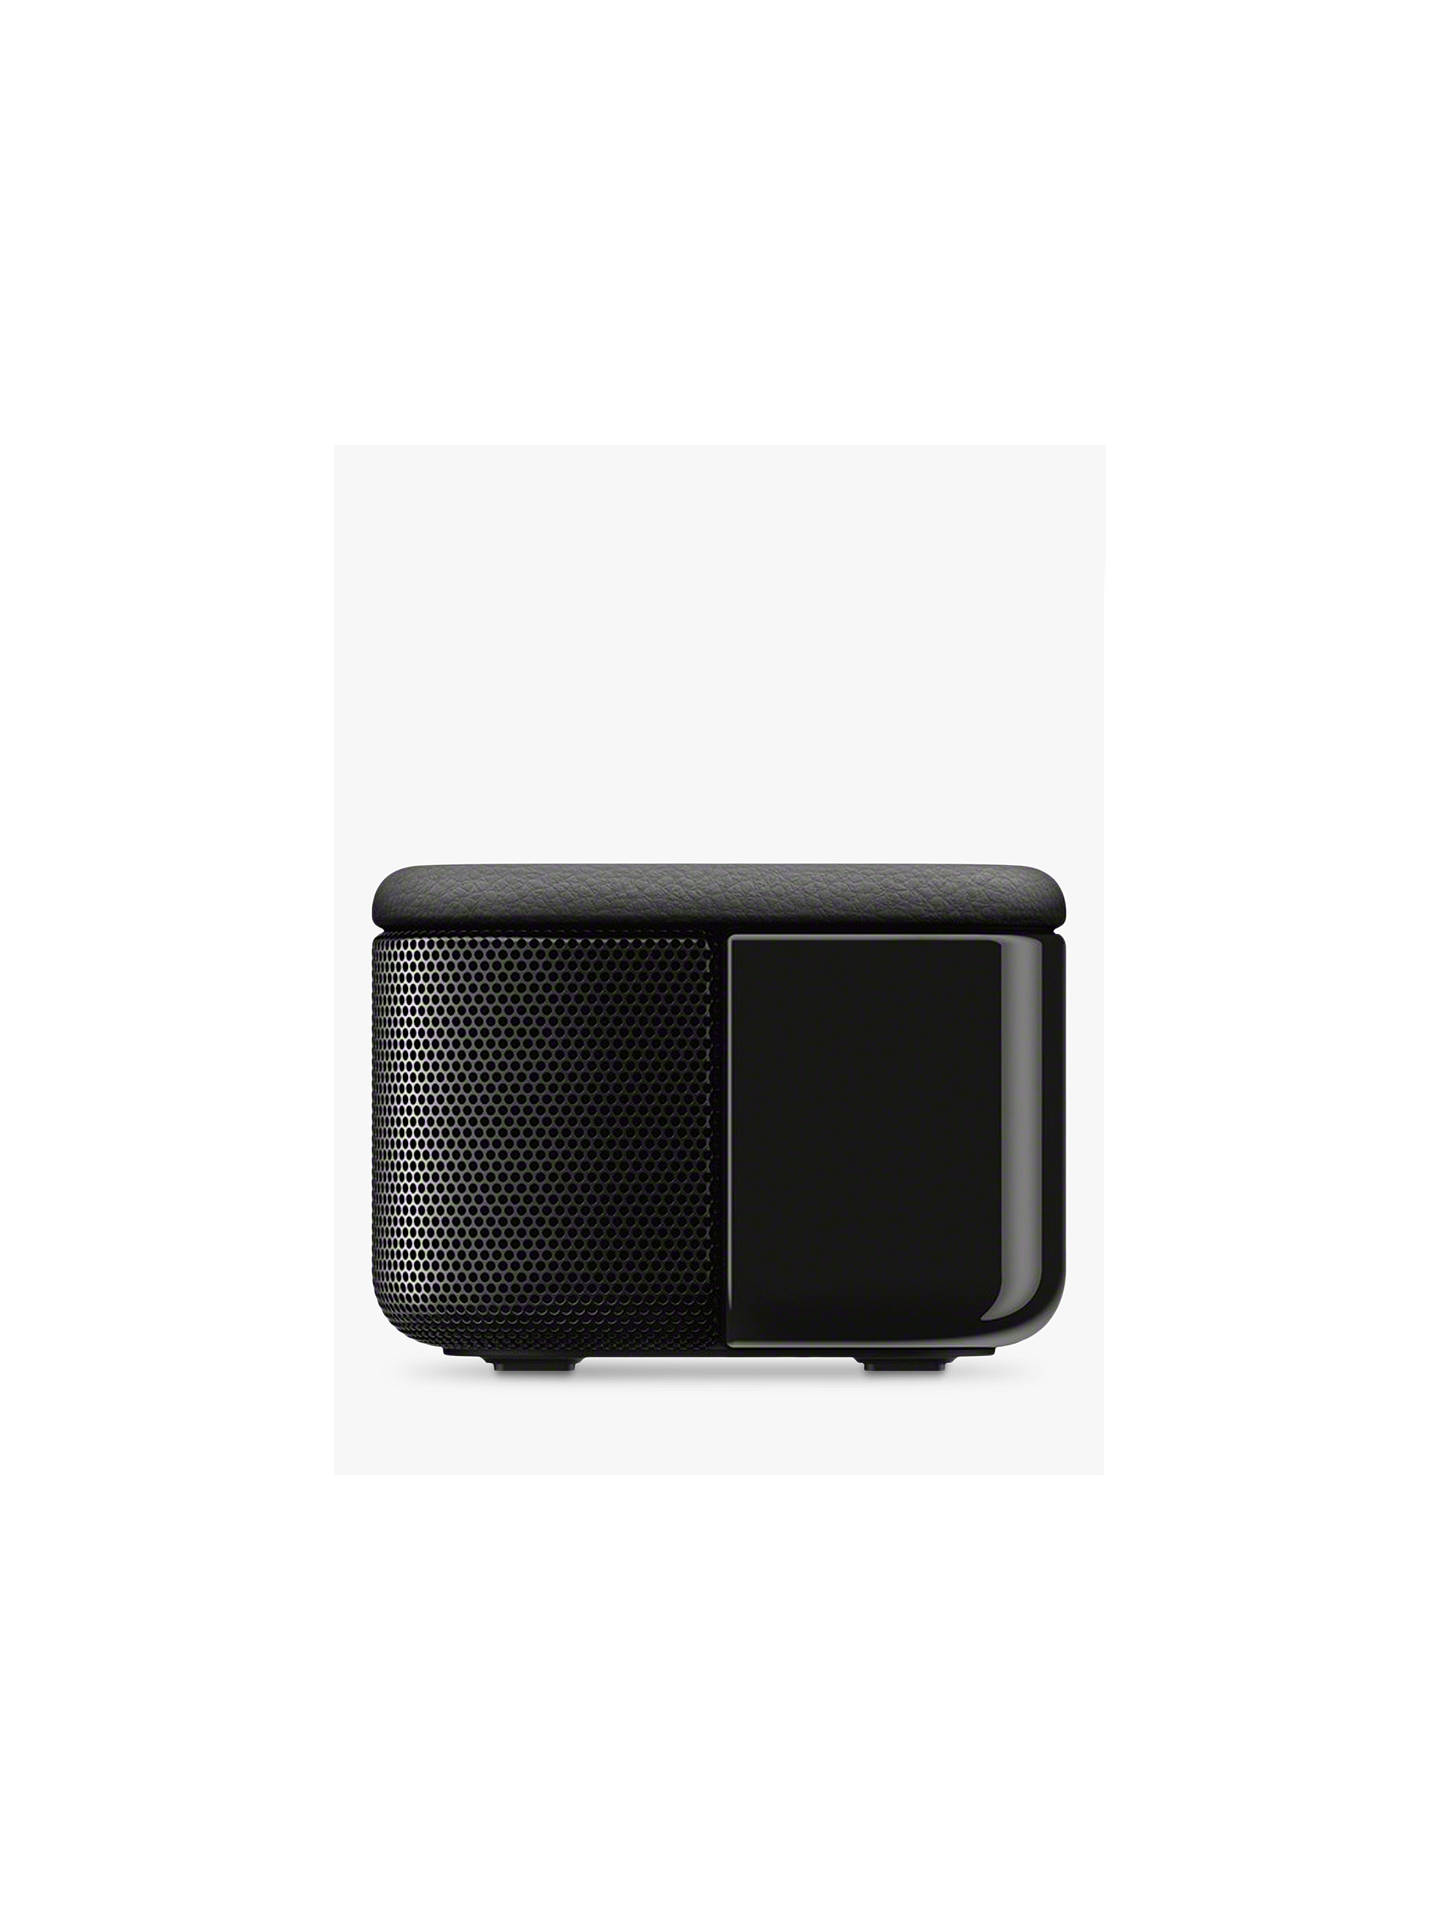 Buy Sony HT-SF150 Bluetooth All-In-One Sound Bar, Black Online at johnlewis.com